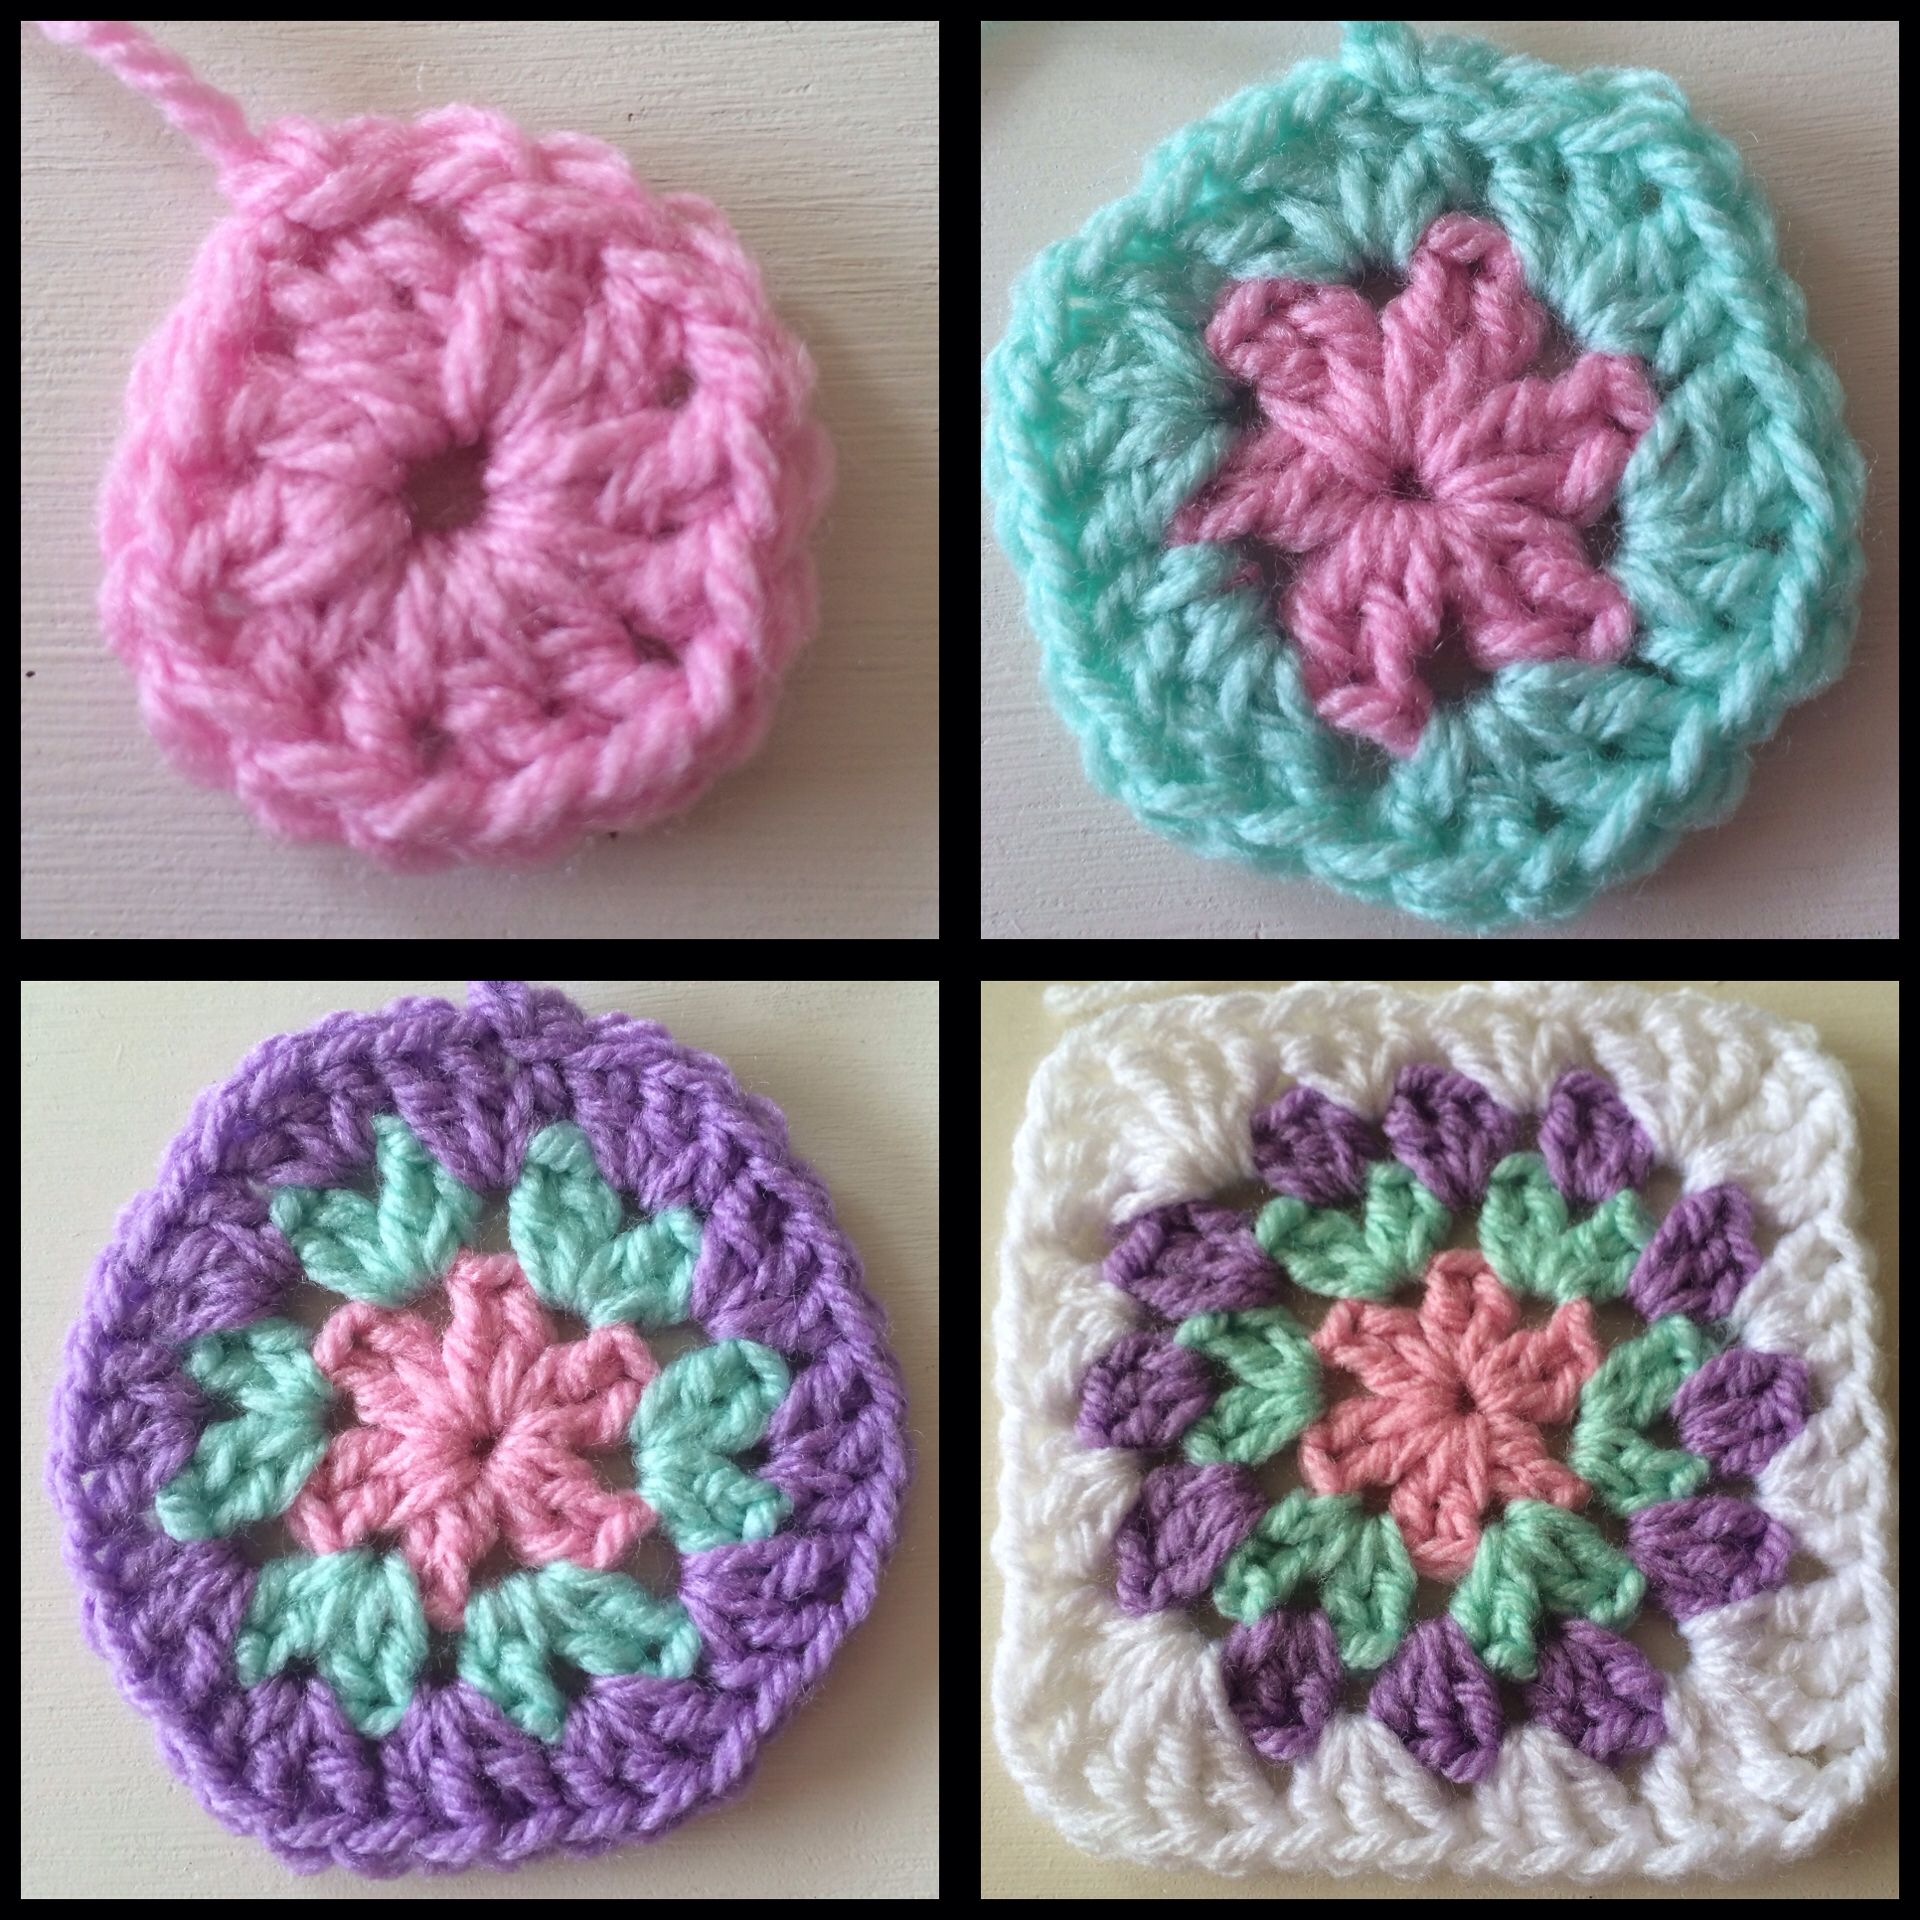 #crochet #grannysquare #circlegrannysquare #craft #yarncraft #diy #yarn